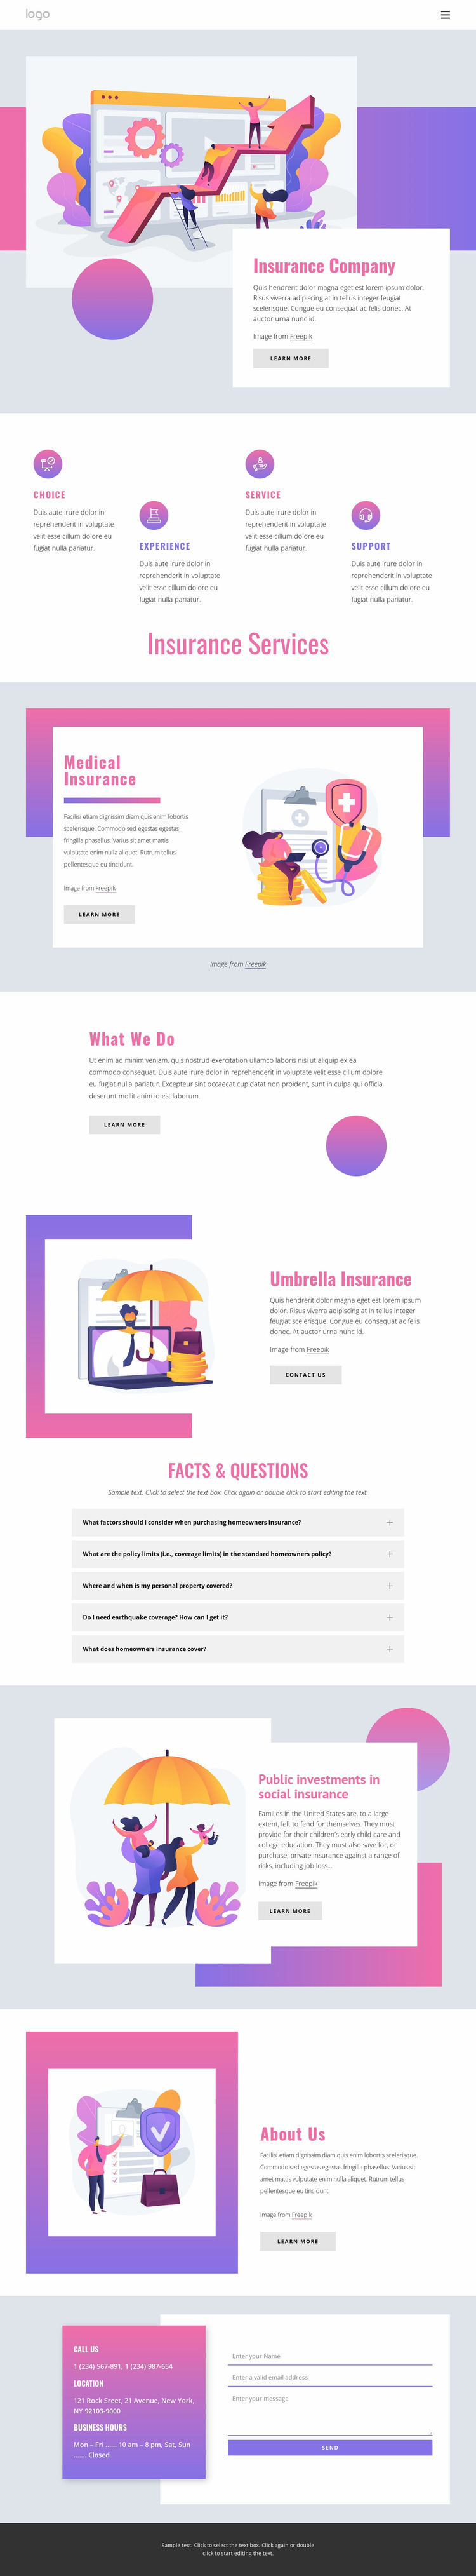 Your consultant for all business risks Website Mockup